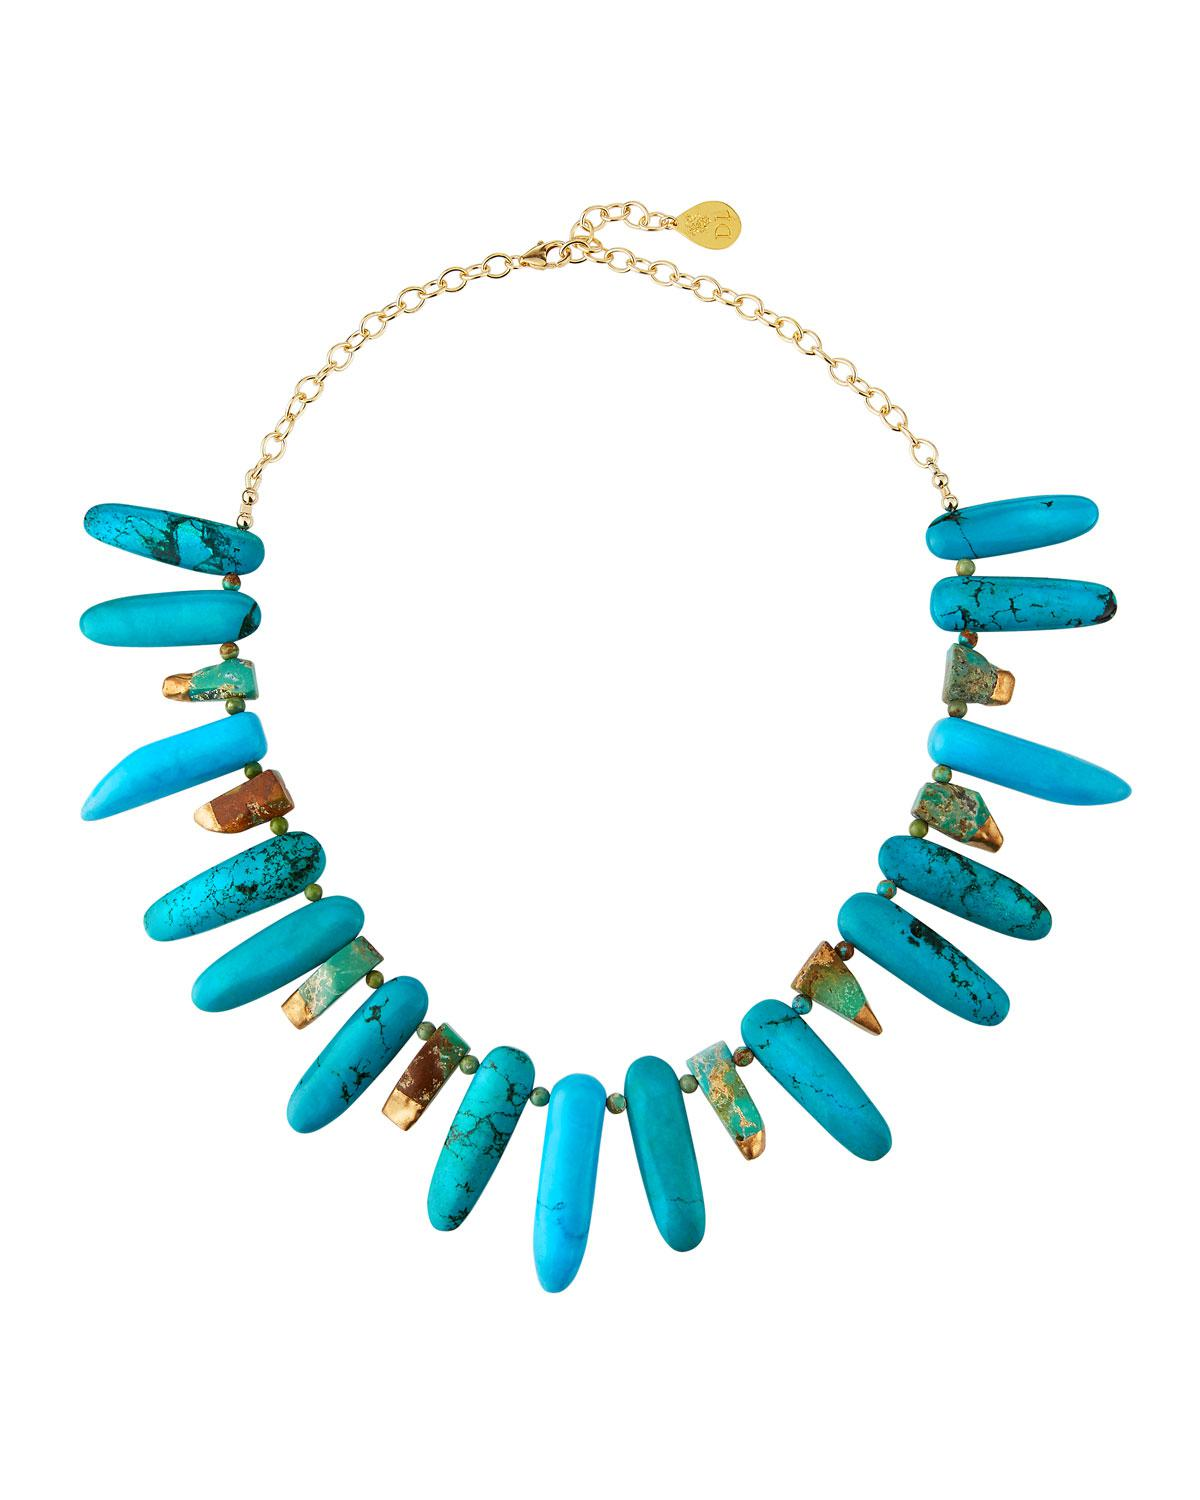 Devon Leigh Copper Infused Turquoise Multi-Strand Necklace wMOmxUvooQ